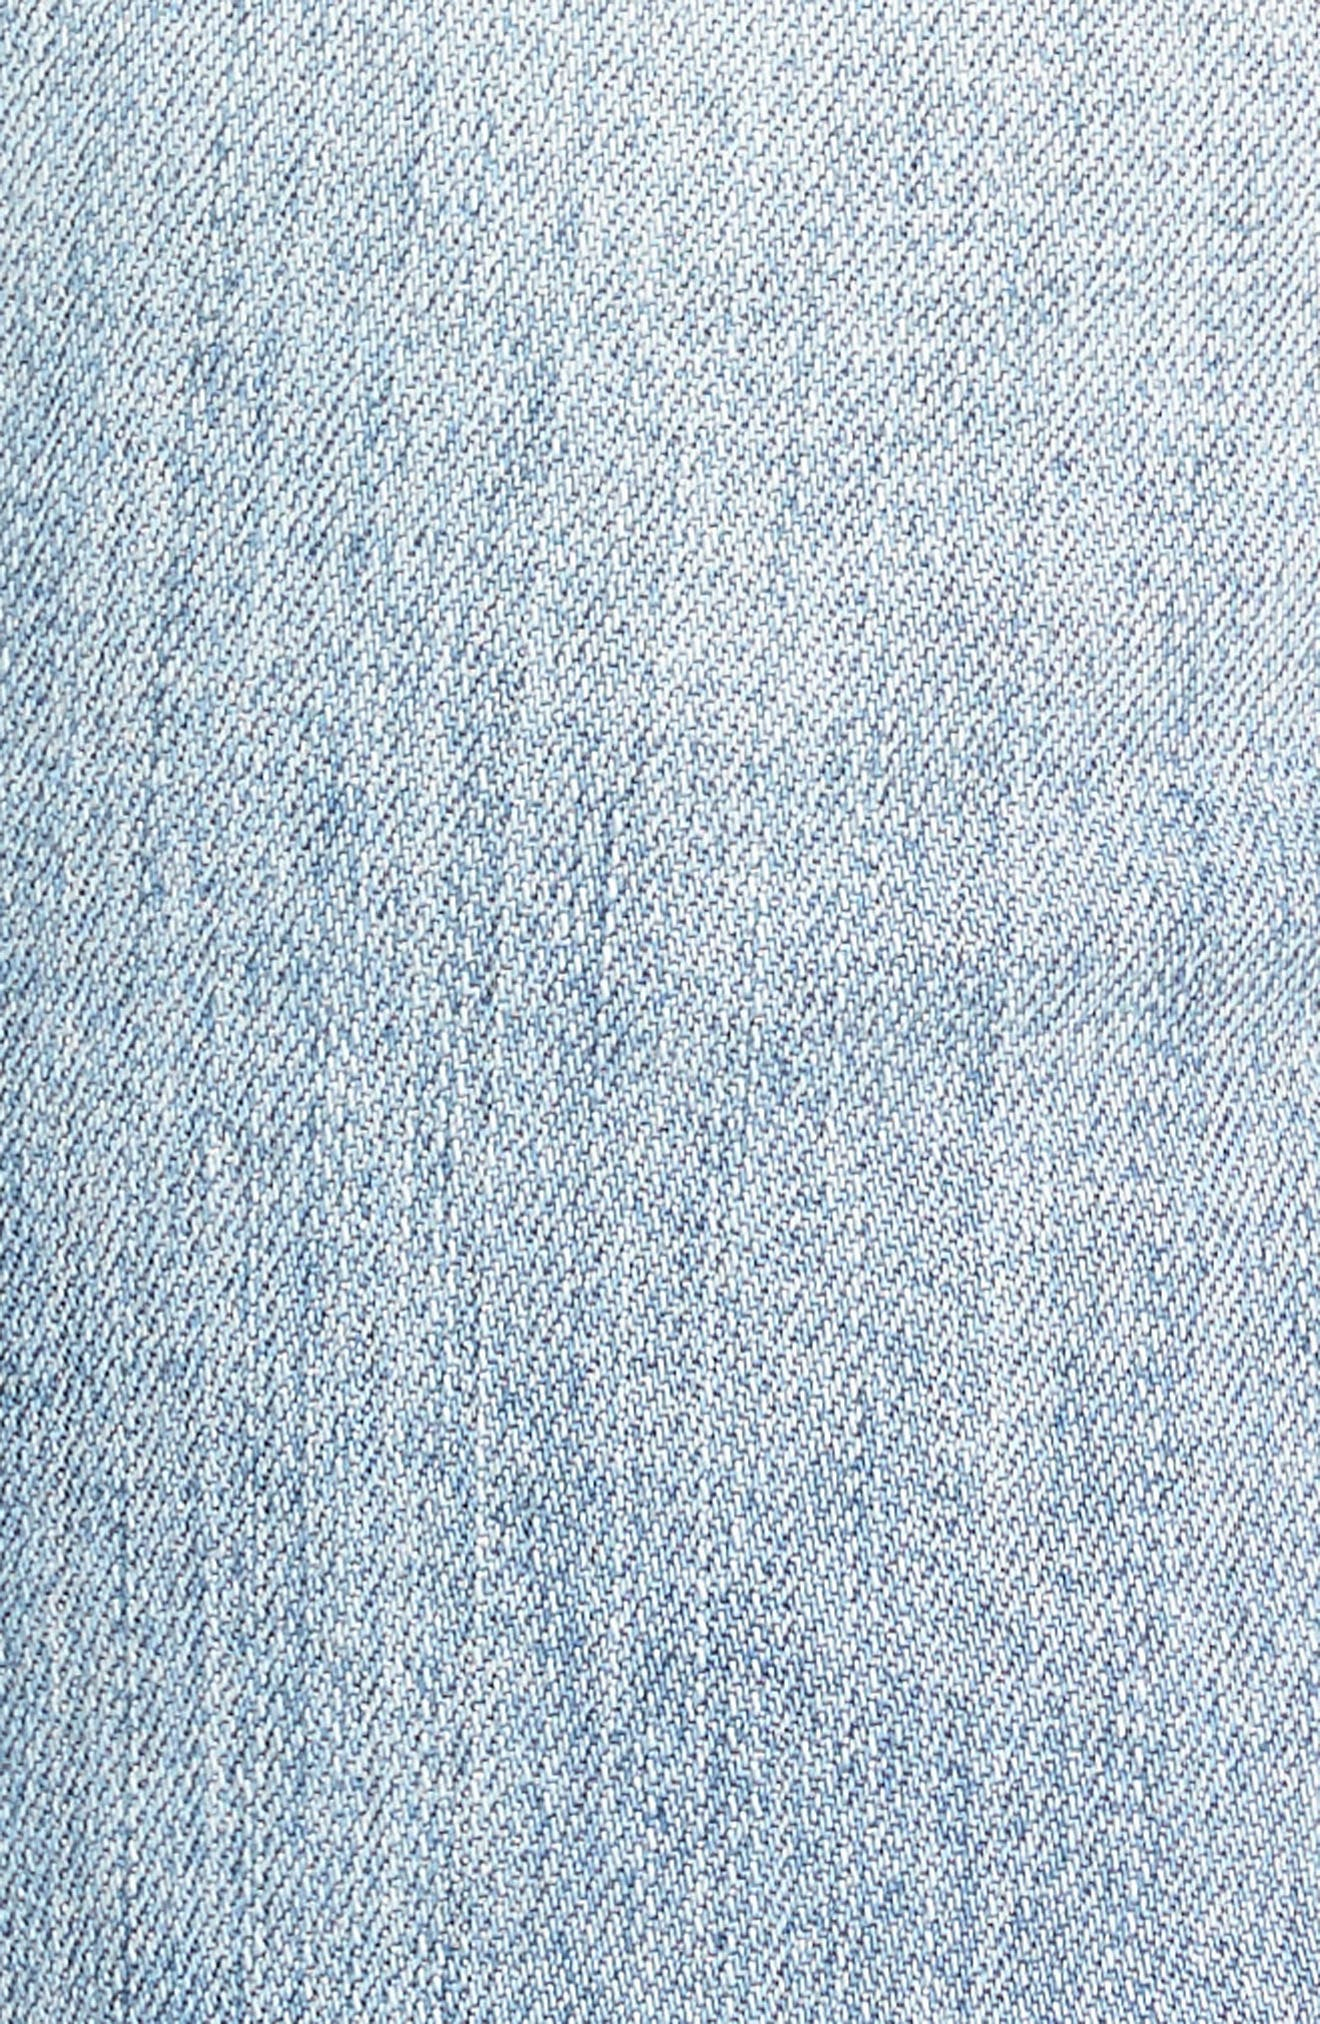 Alternate Image 6  - KUT from the Kloth Embroidered Straight Leg Jeans (Excellency) (Regular & Petite)